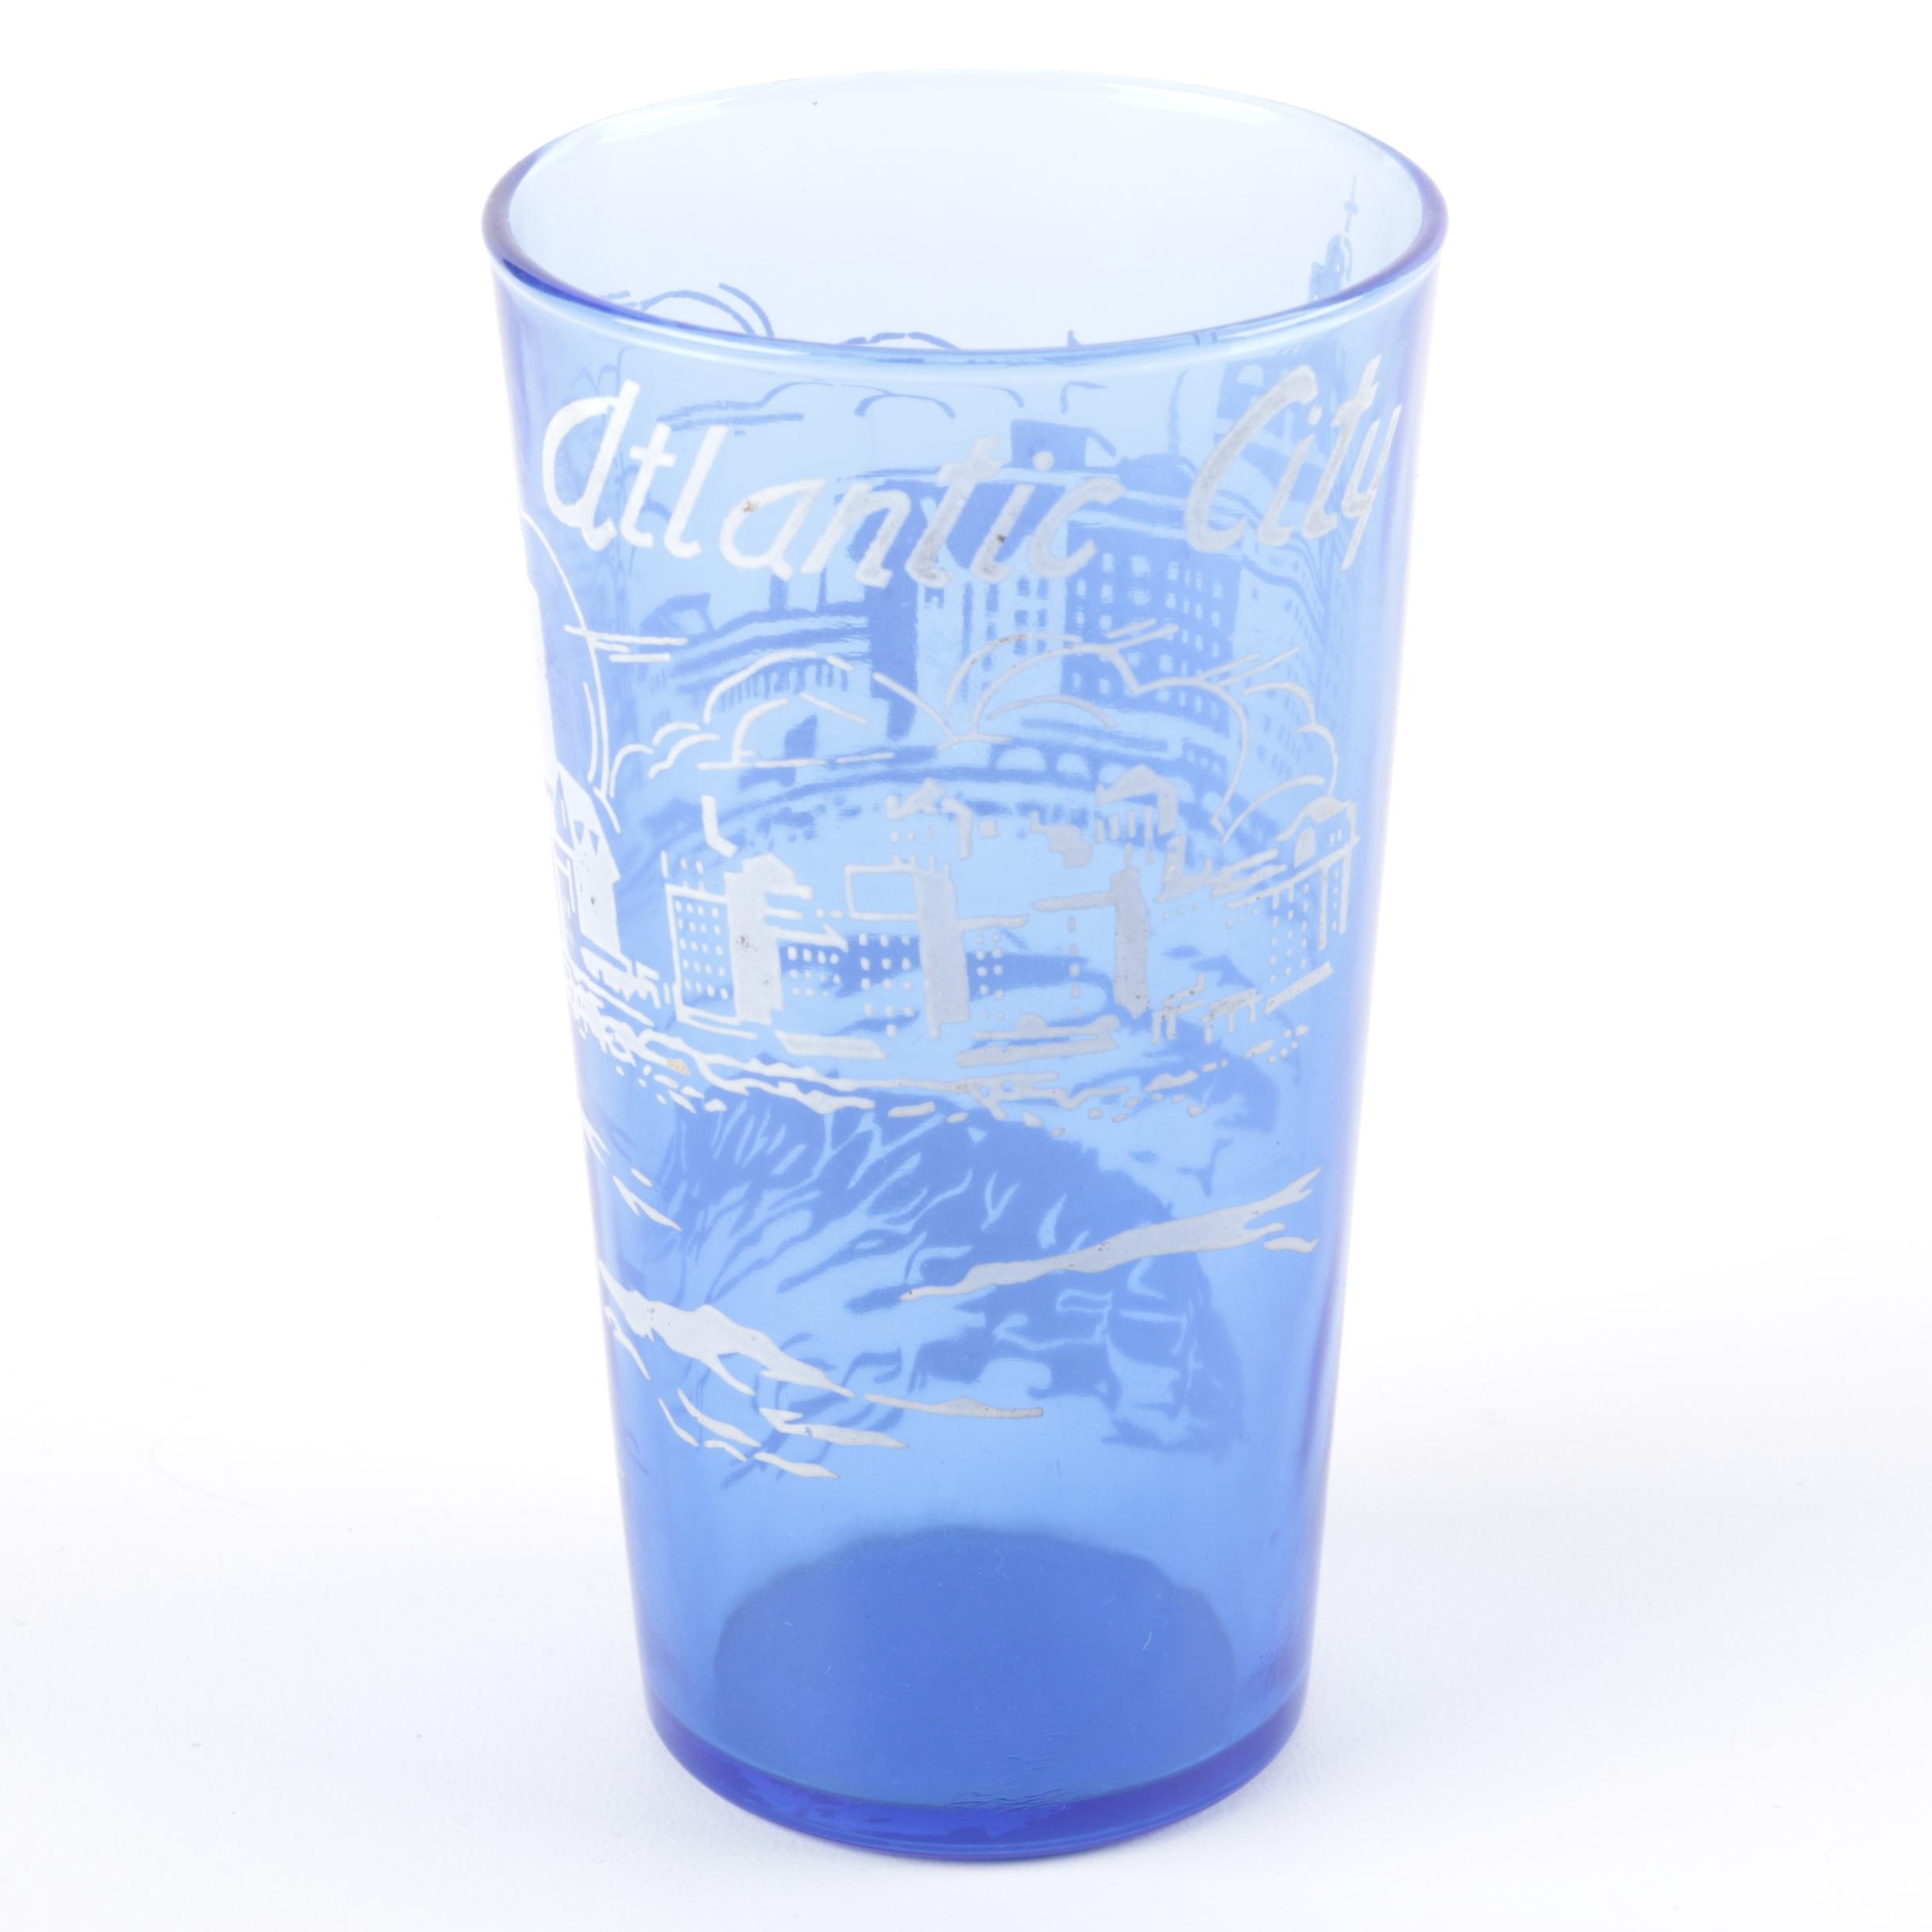 Vintage Atlantic City Glass Tumbler